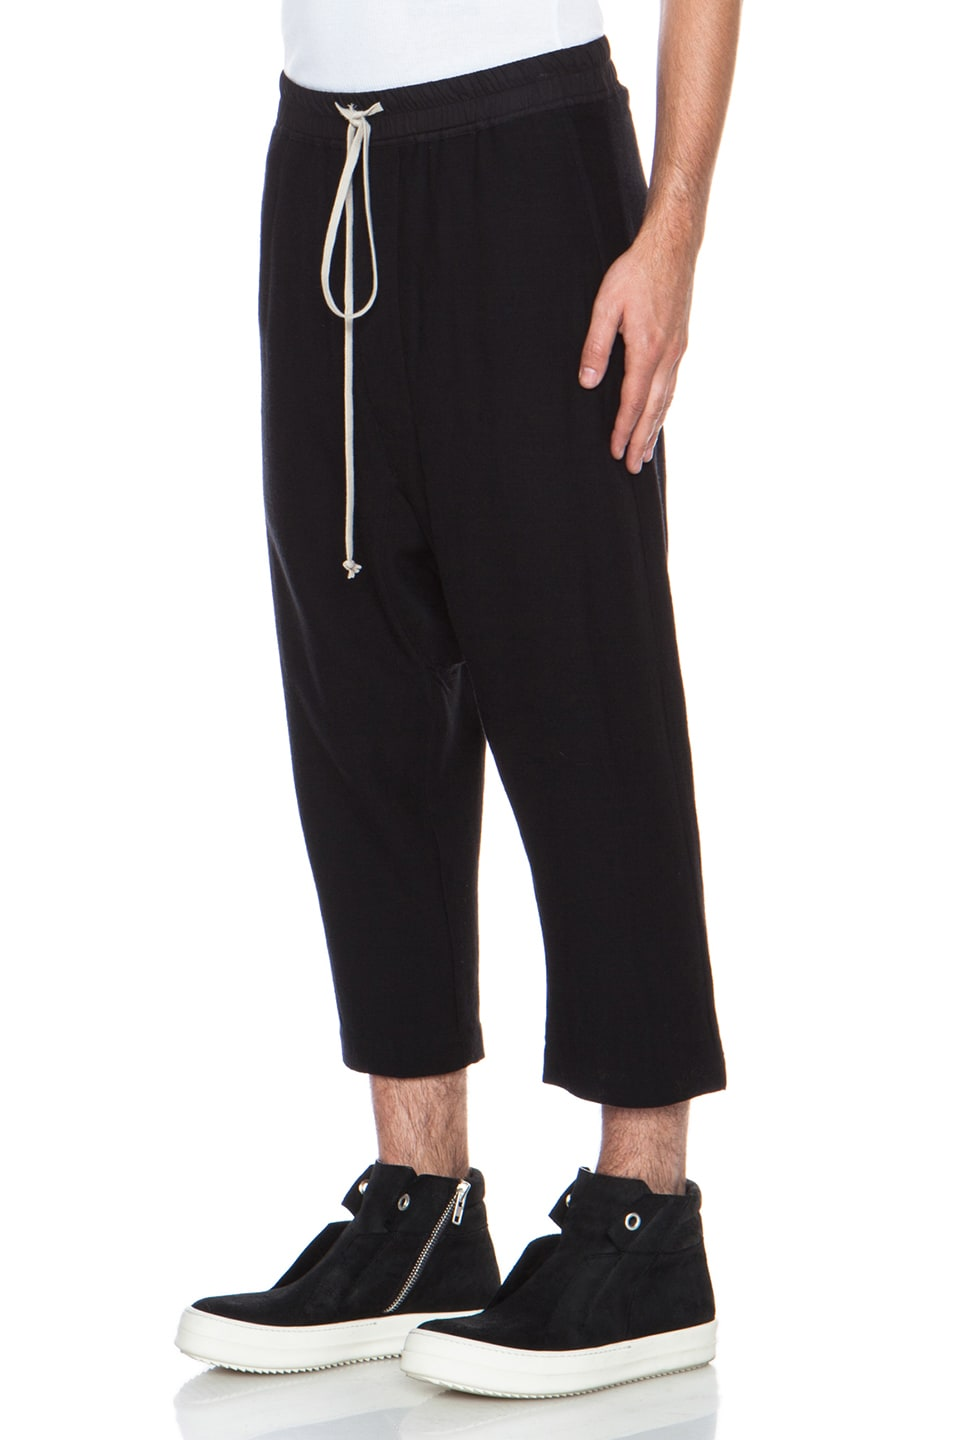 Clearance High Quality Drawstring Cropped pants - Black Rick Owens Cheap Sale Official ocIPg